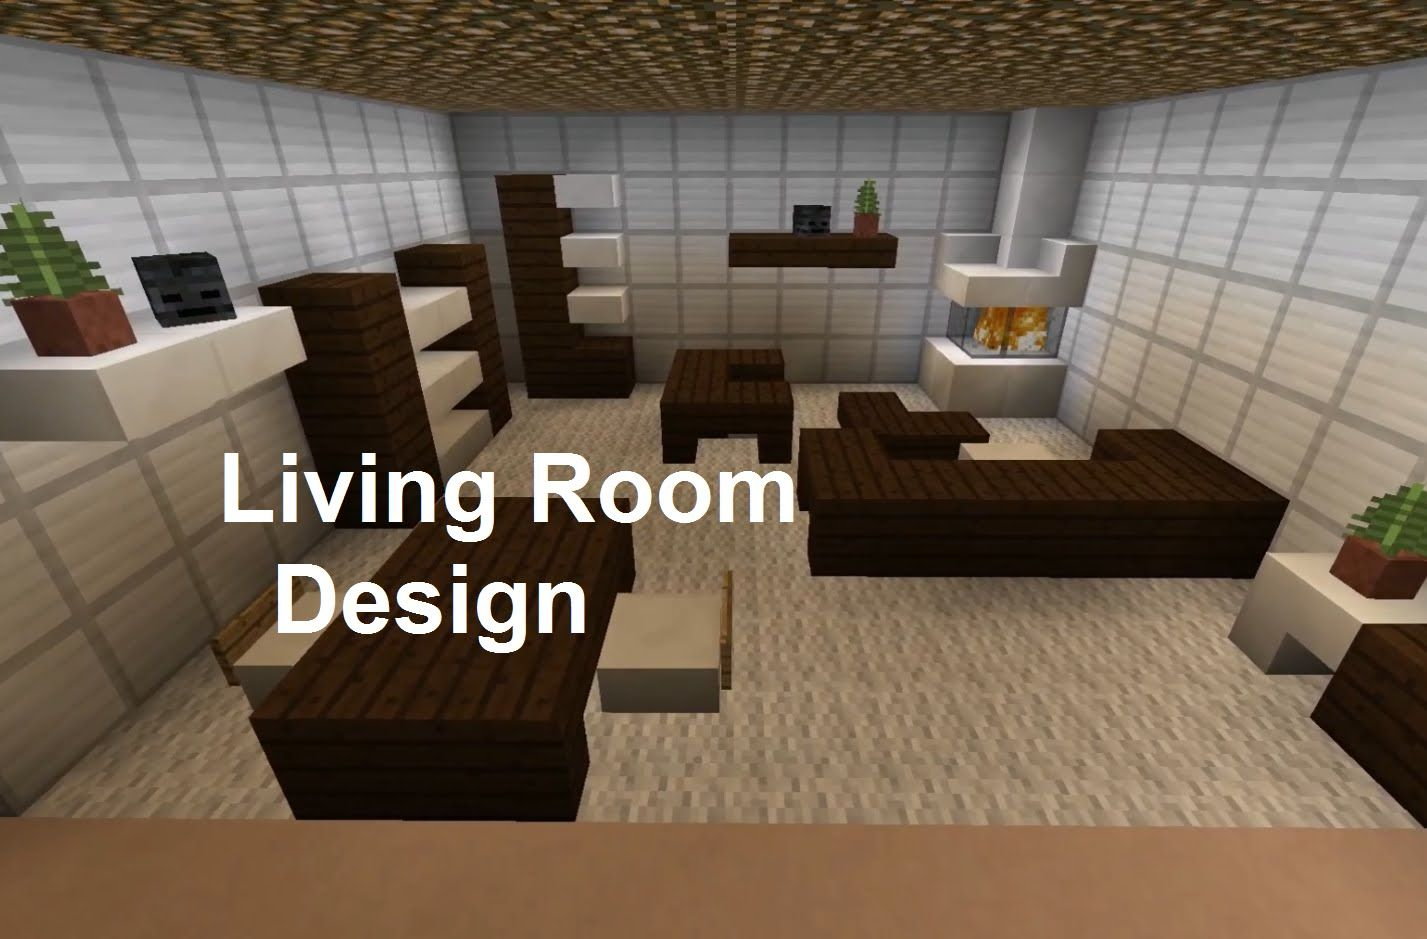 Minecraft Living Room Design Interior Ideas Minecraft Ninja Living Room Decor Ideas 13757591 Best Living Room Interior Change Your Living Room Decor Ideer